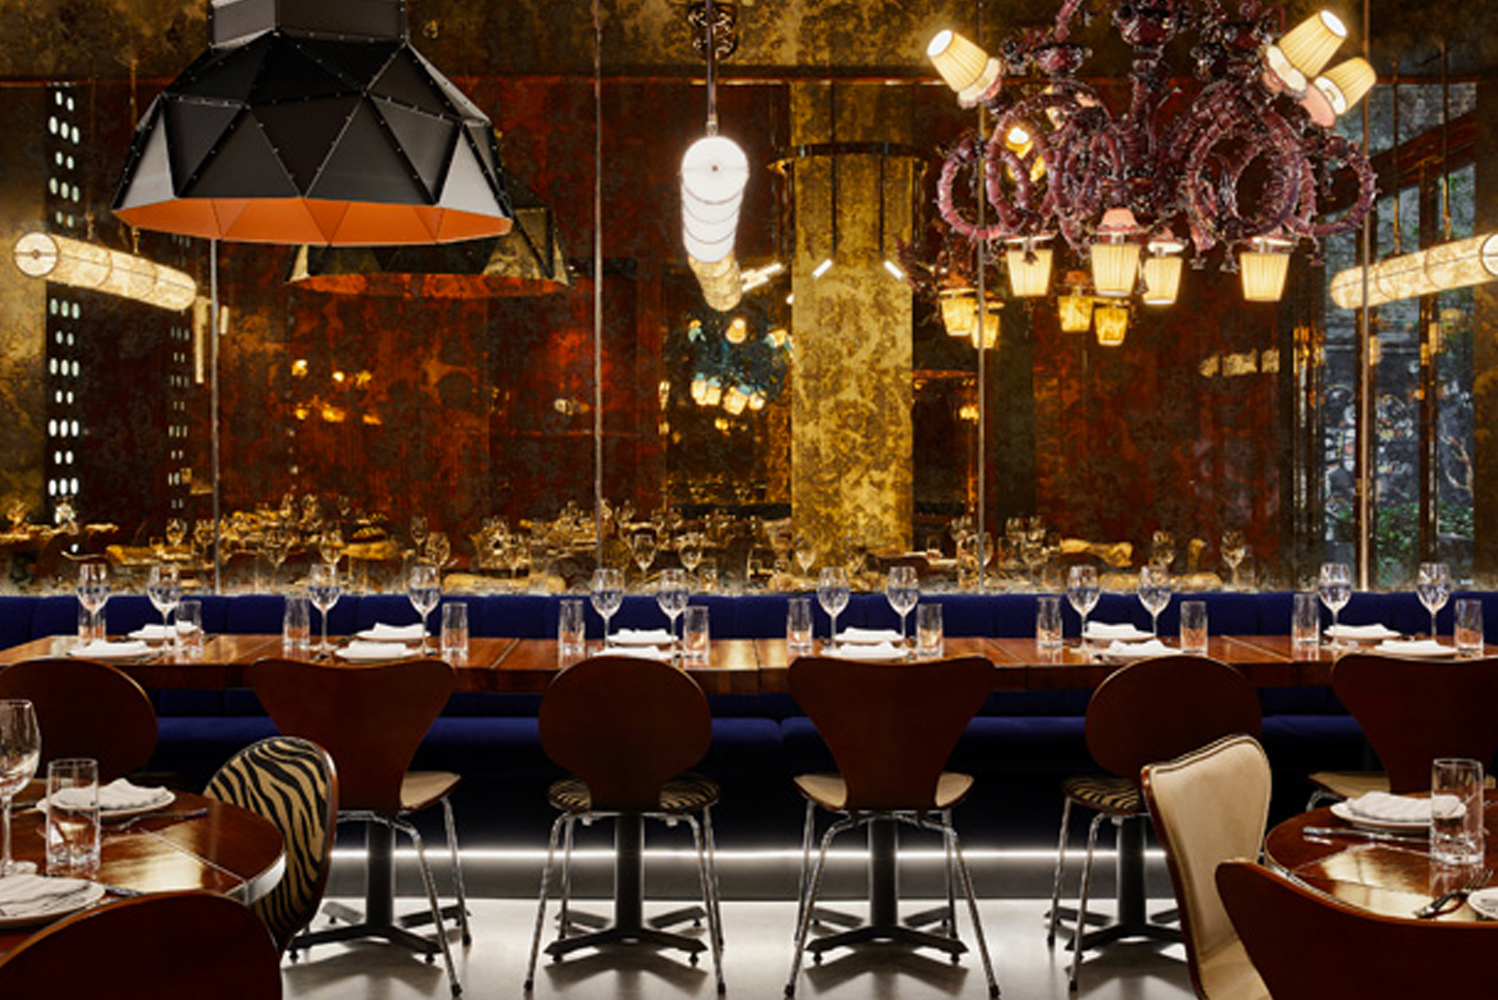 The 176-room property features eclectic interiors by LA-based designer Marcello Pozzi (of Marcello Pozzi Architecture & Design); a Latin-inspired restaurant; and two rooftop bars.